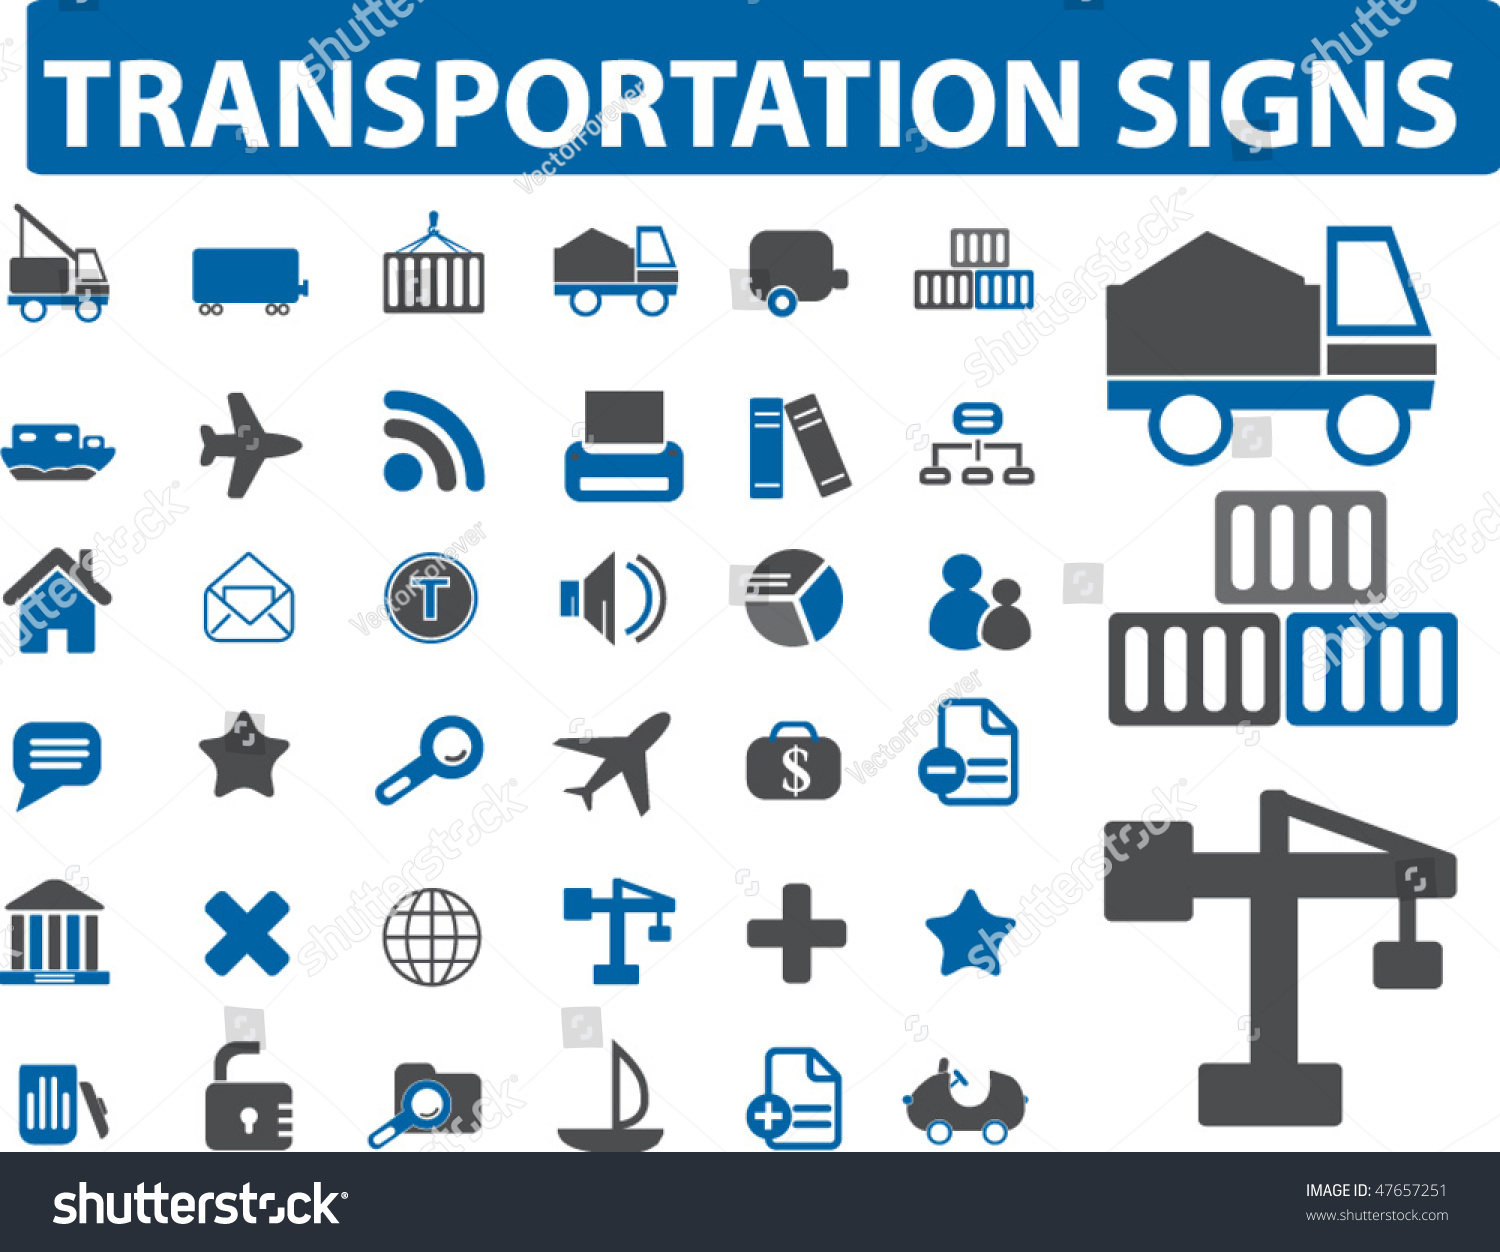 36 Transportation Signs Vector  47657251  Shutterstock. Electronic Signs Of Stroke. Water Glass Signs. Acute Signs. Metabolism Signs Of Stroke. Western Signs Of Stroke. Elementary Student Signs. Major Cause Signs Of Stroke. Poor Circulation Signs